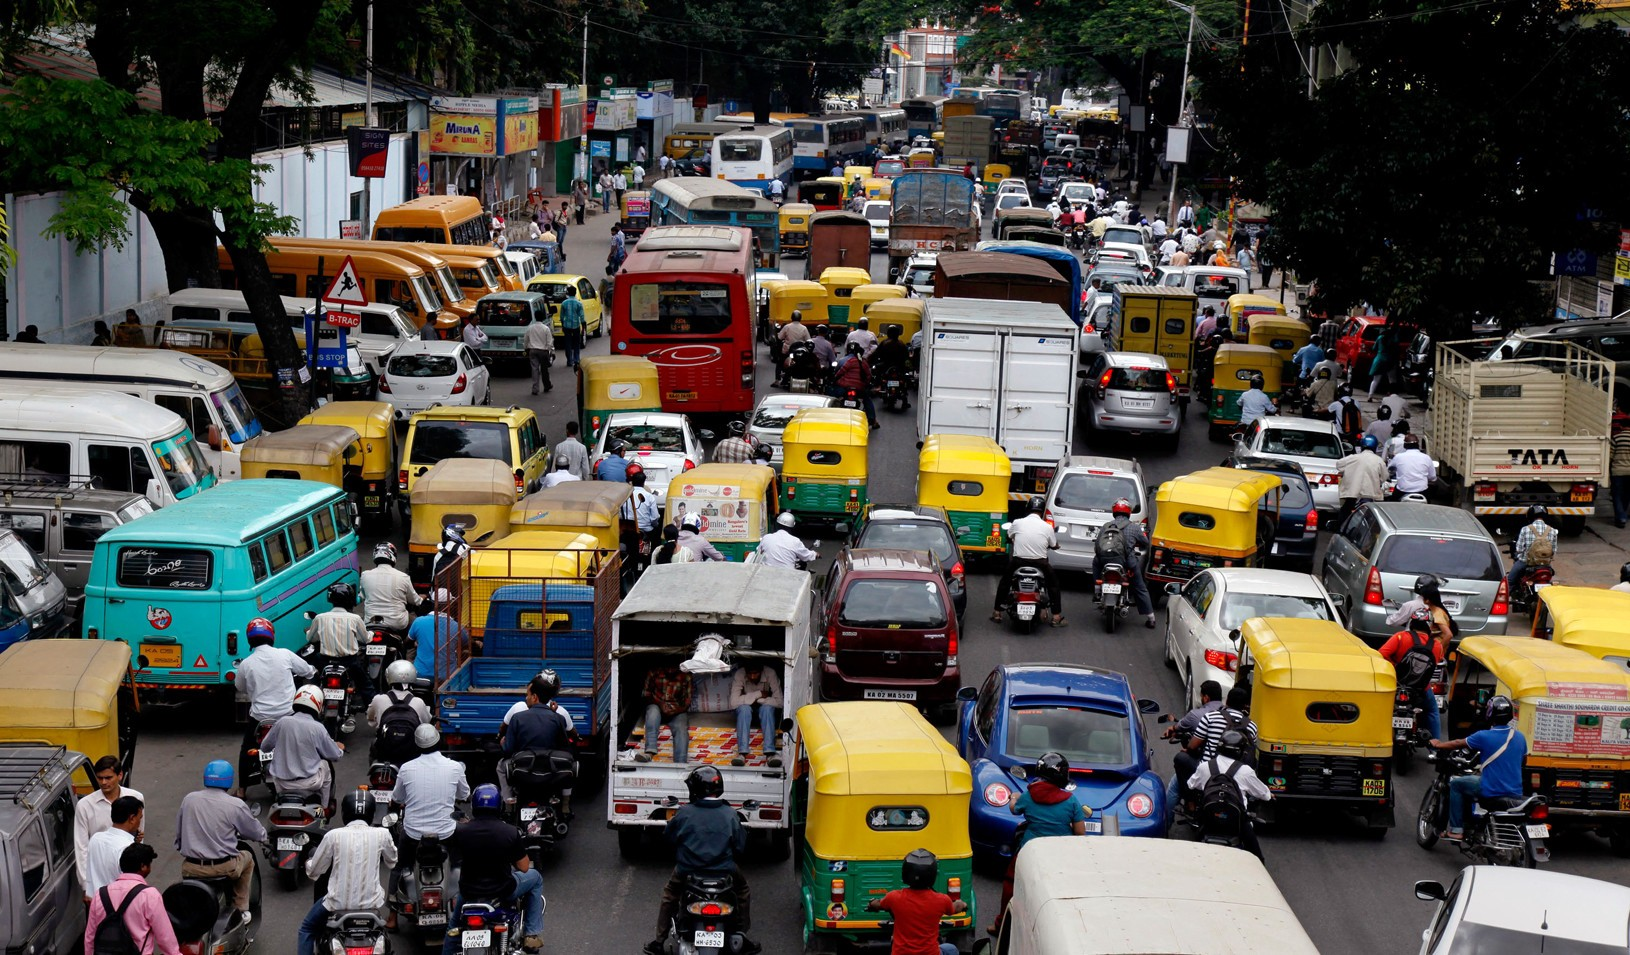 India's real estate, automobile sector see decline: report